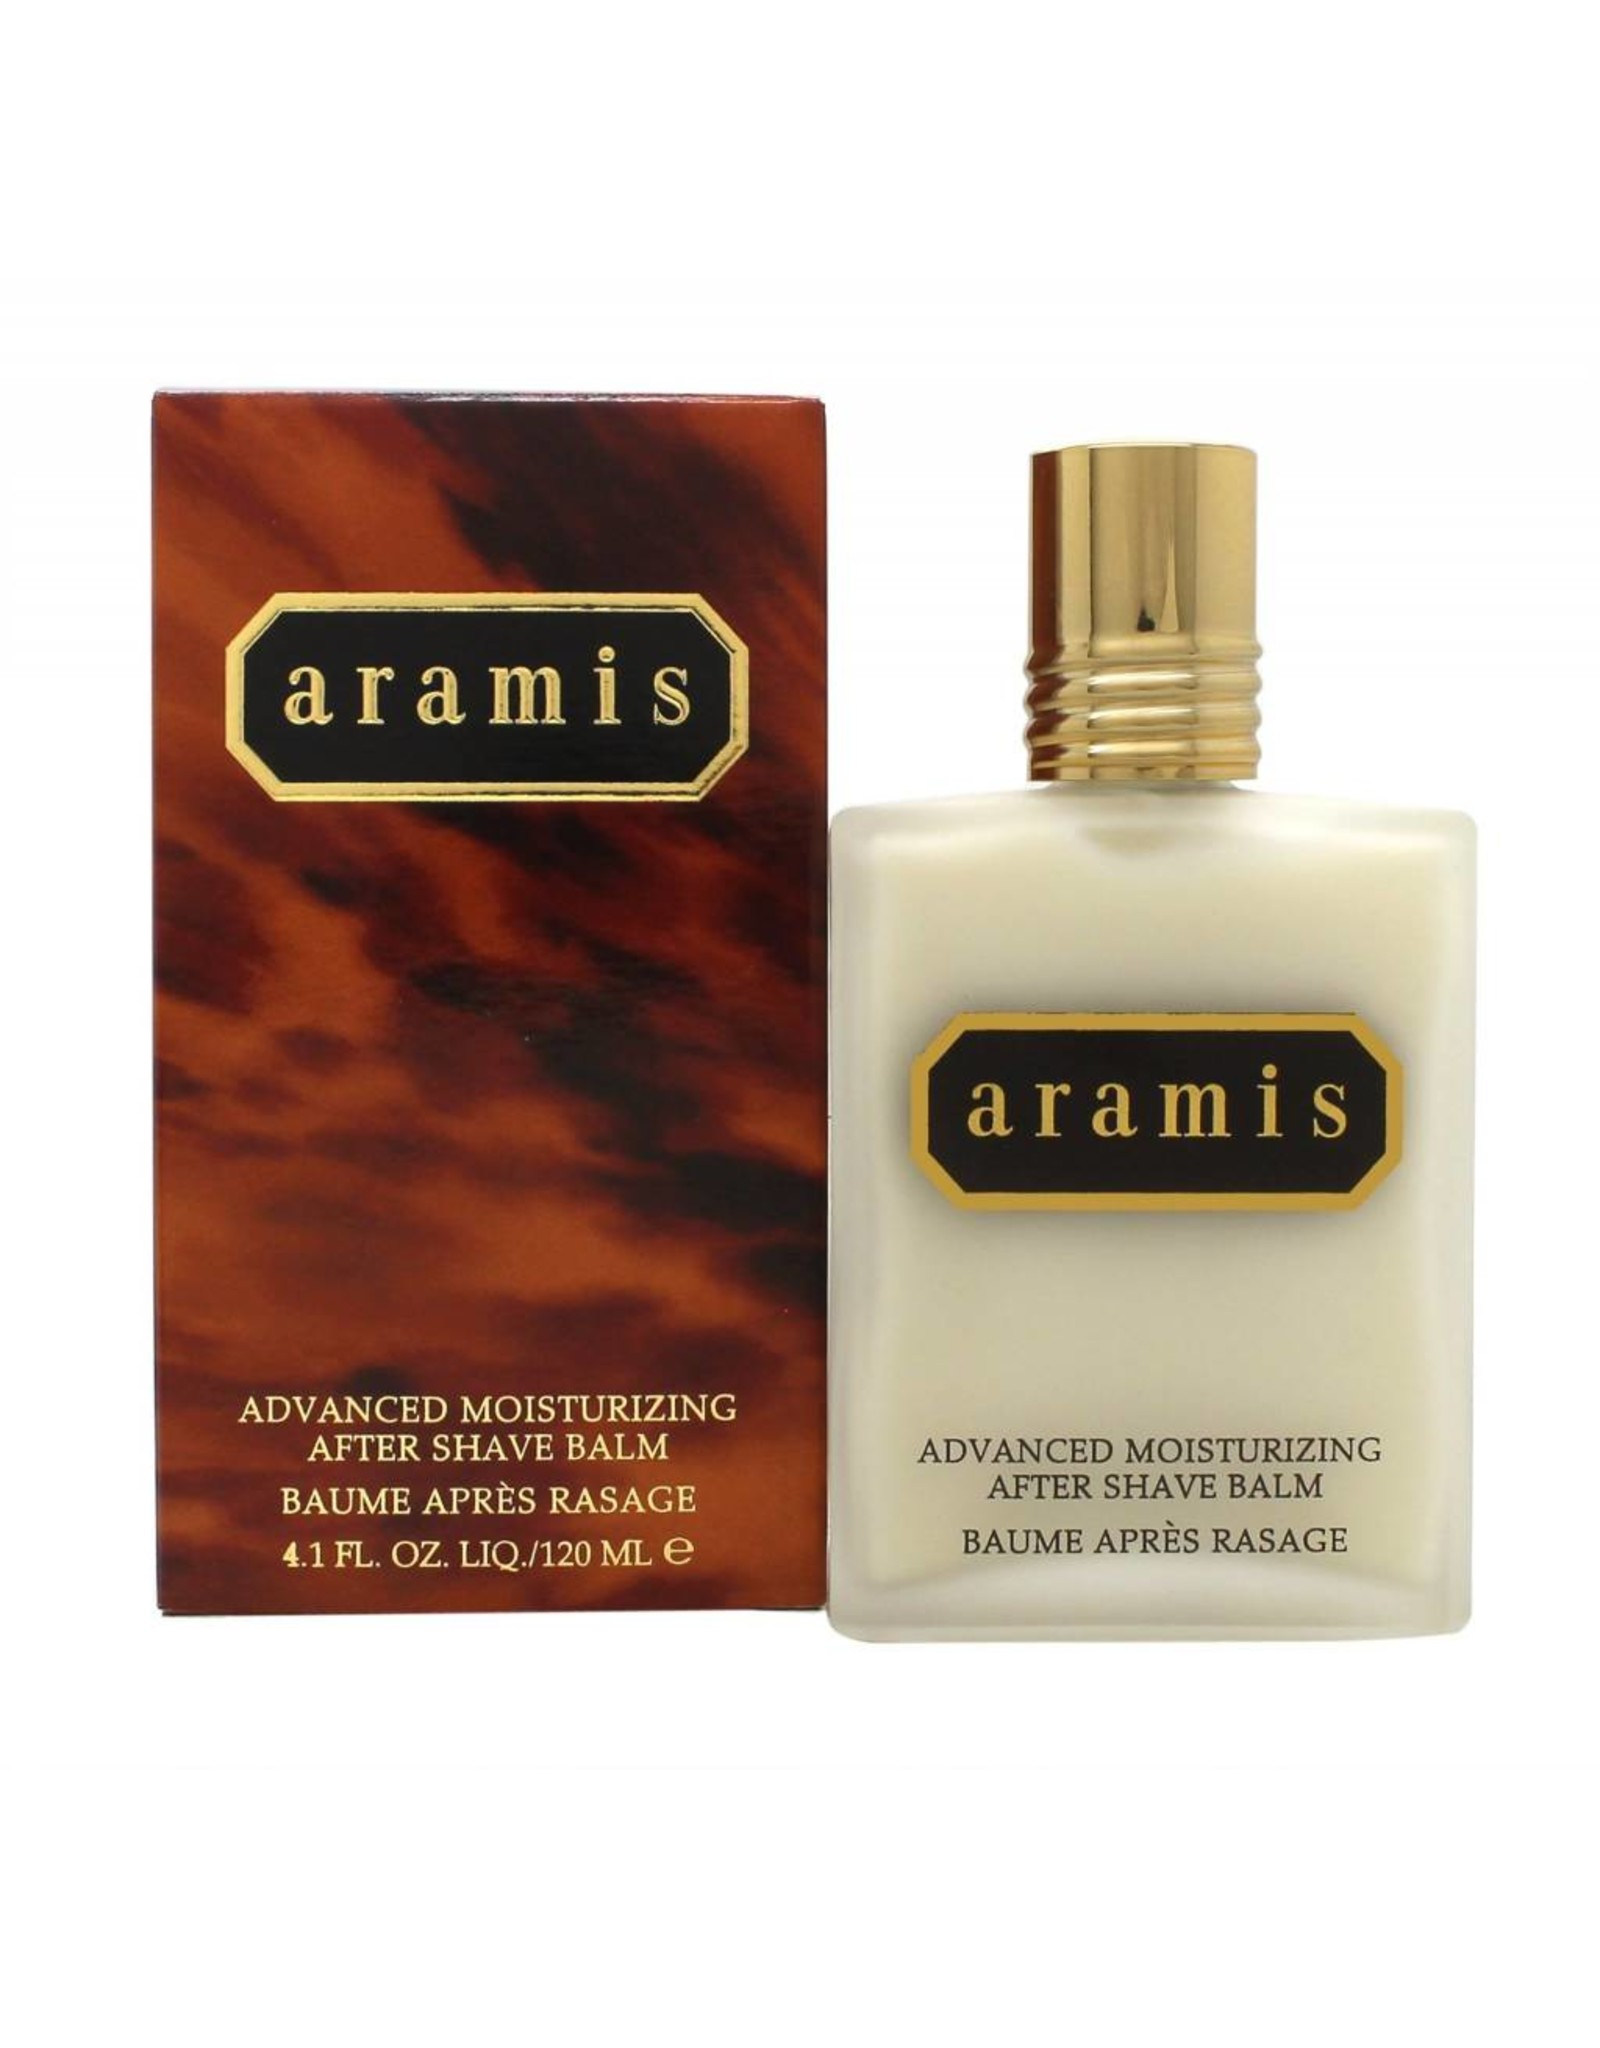 ARAMIS ARAMIS ARAMIS ADVANCED MOISTURIZING AFTER SHAVE BALM